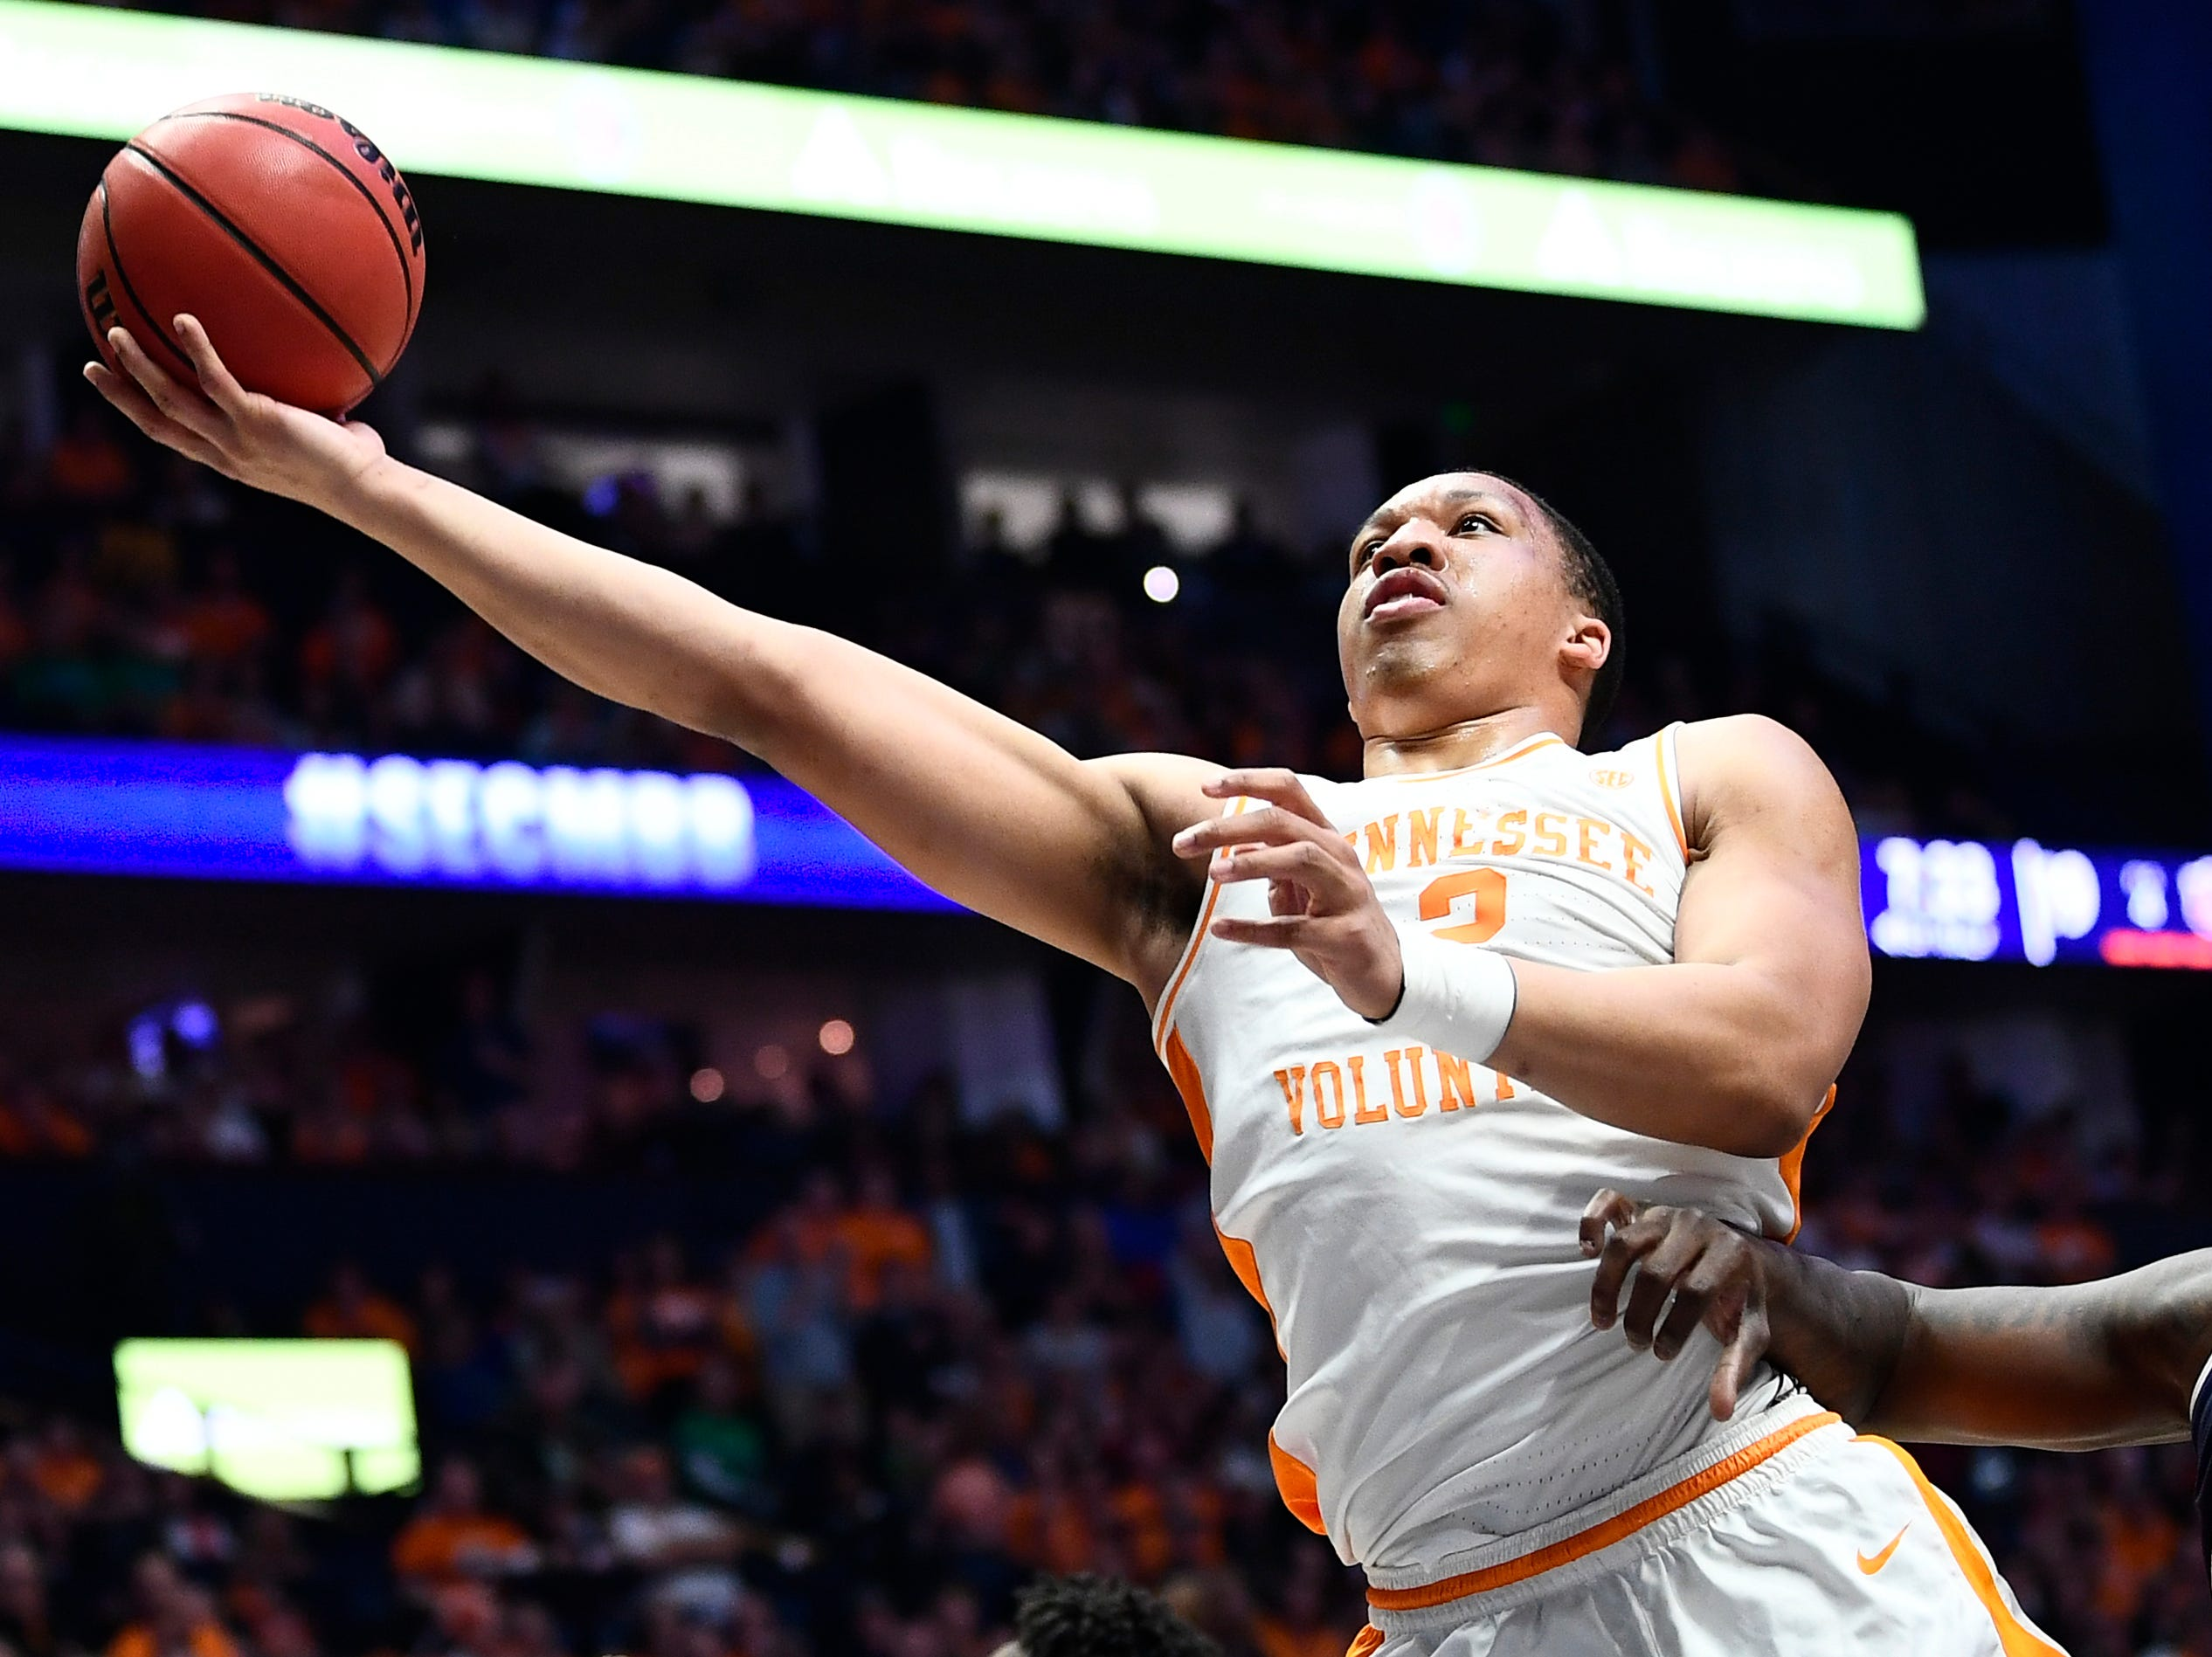 Tennessee forward Grant Williams (2) takes a shot during the first half of the SEC Men's Basketball Tournament championship game at Bridgestone Arena in Nashville, Tenn., Sunday, March 17, 2019.